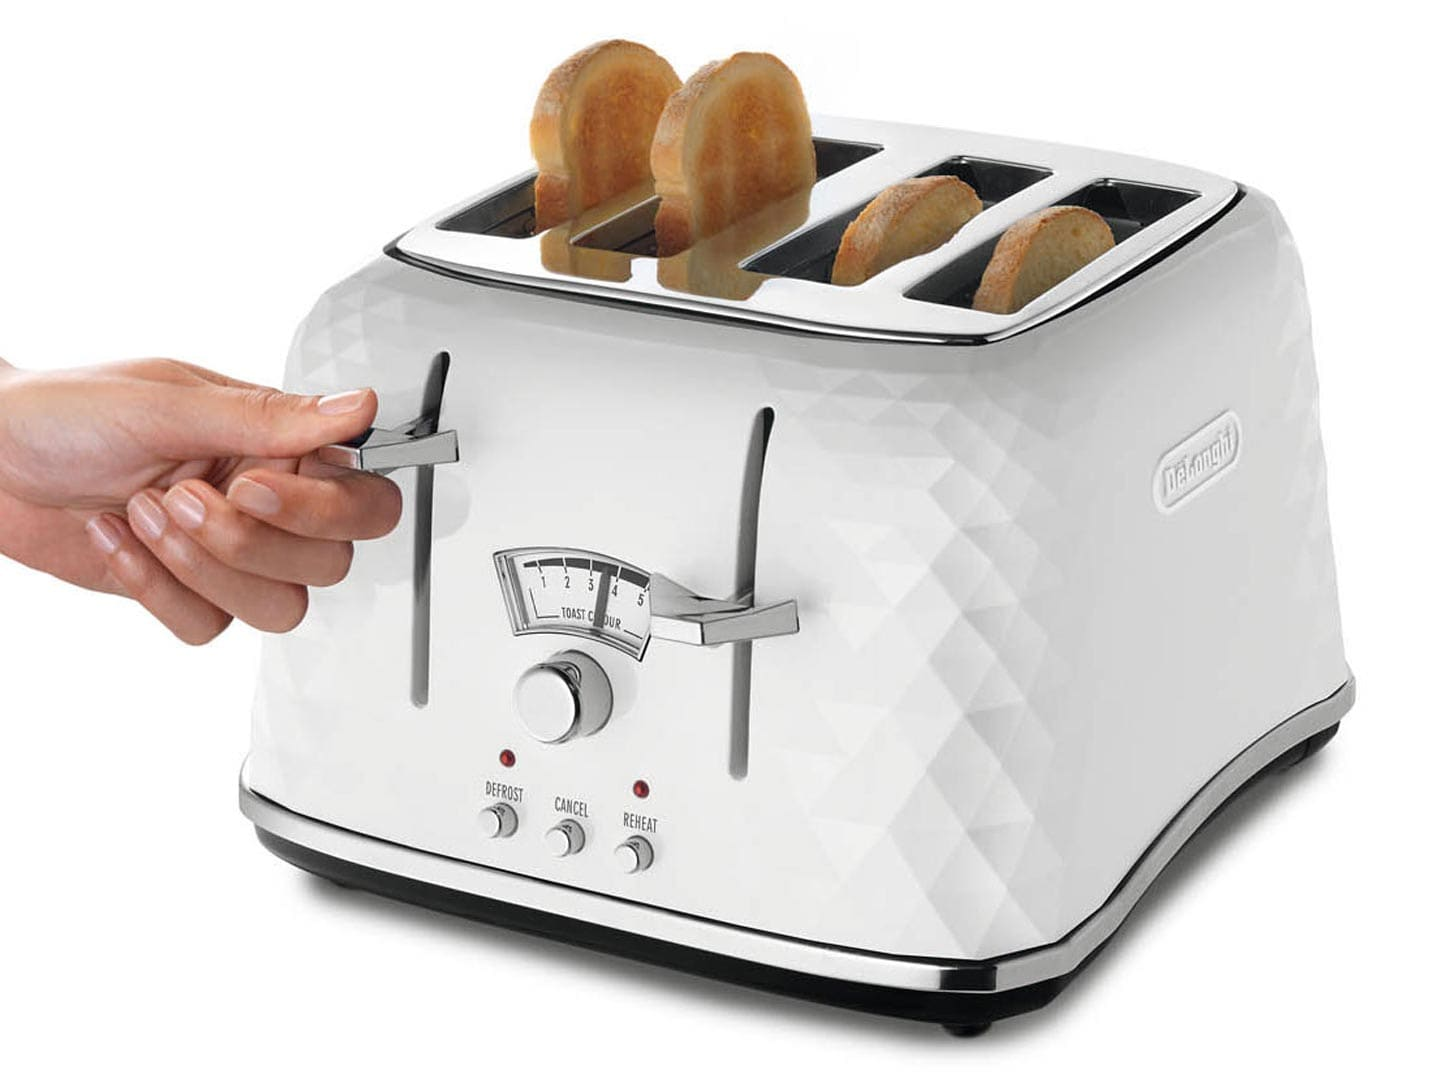 DeLonghi Brillante 4 Slice Toaster White CTJ4003W